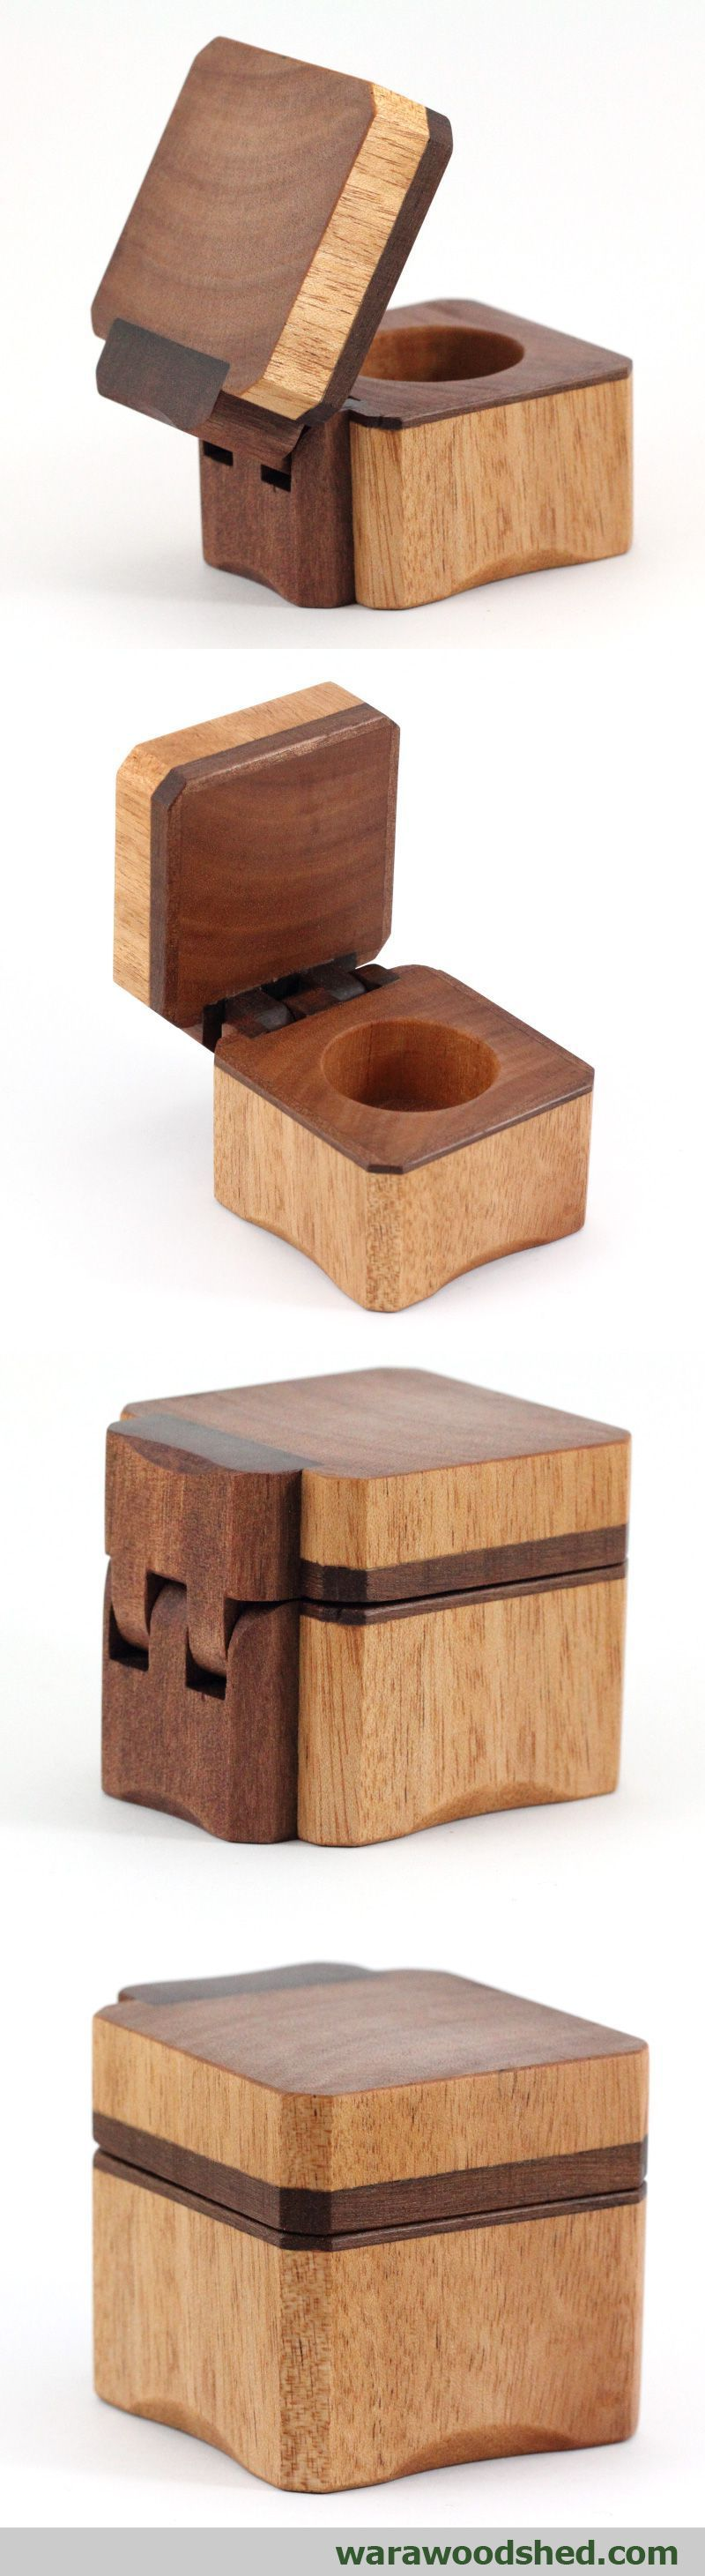 More Wooden Ring Boxes Cool woodworking projects